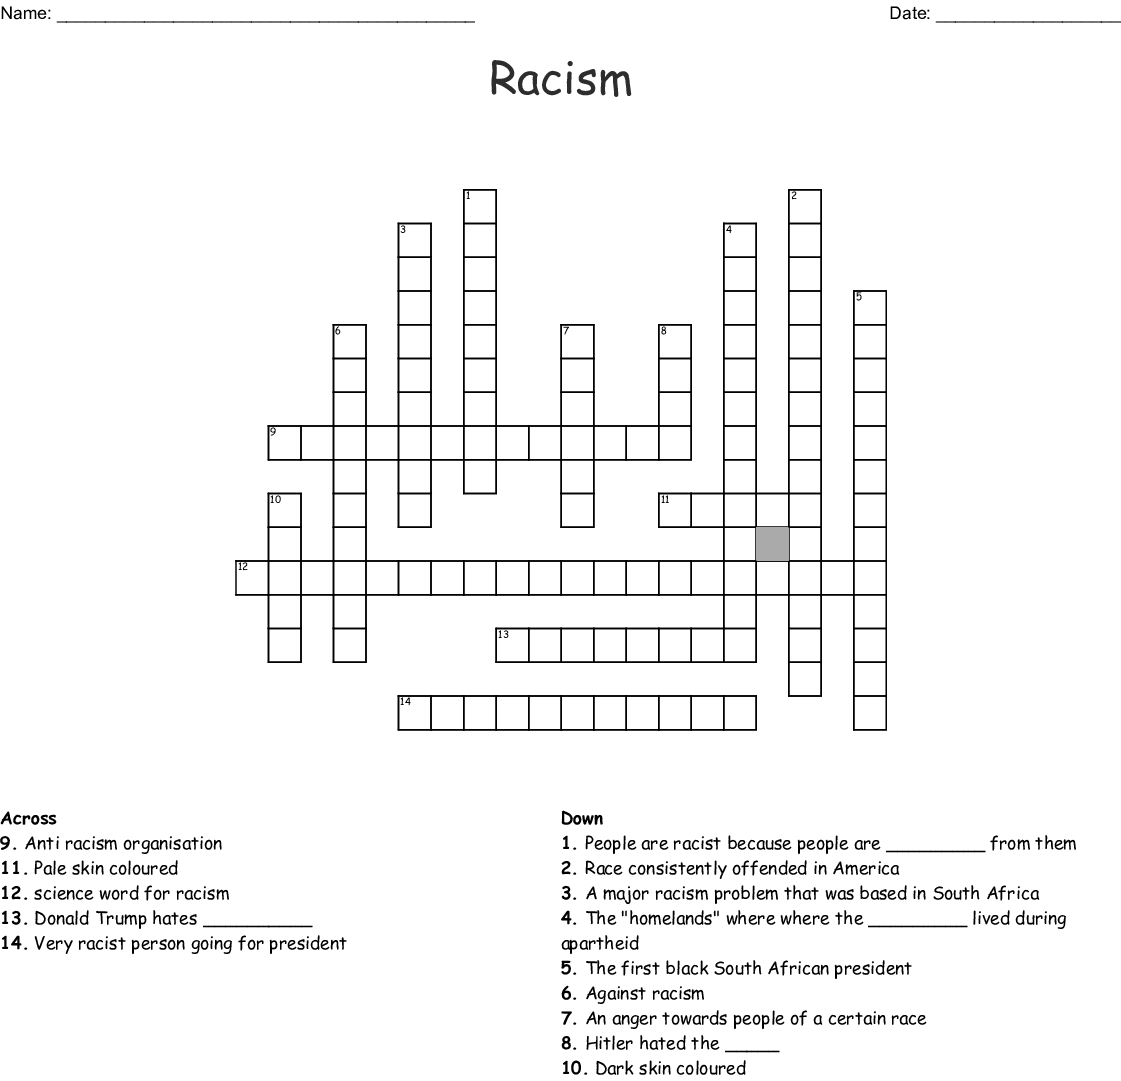 Racism Crossword